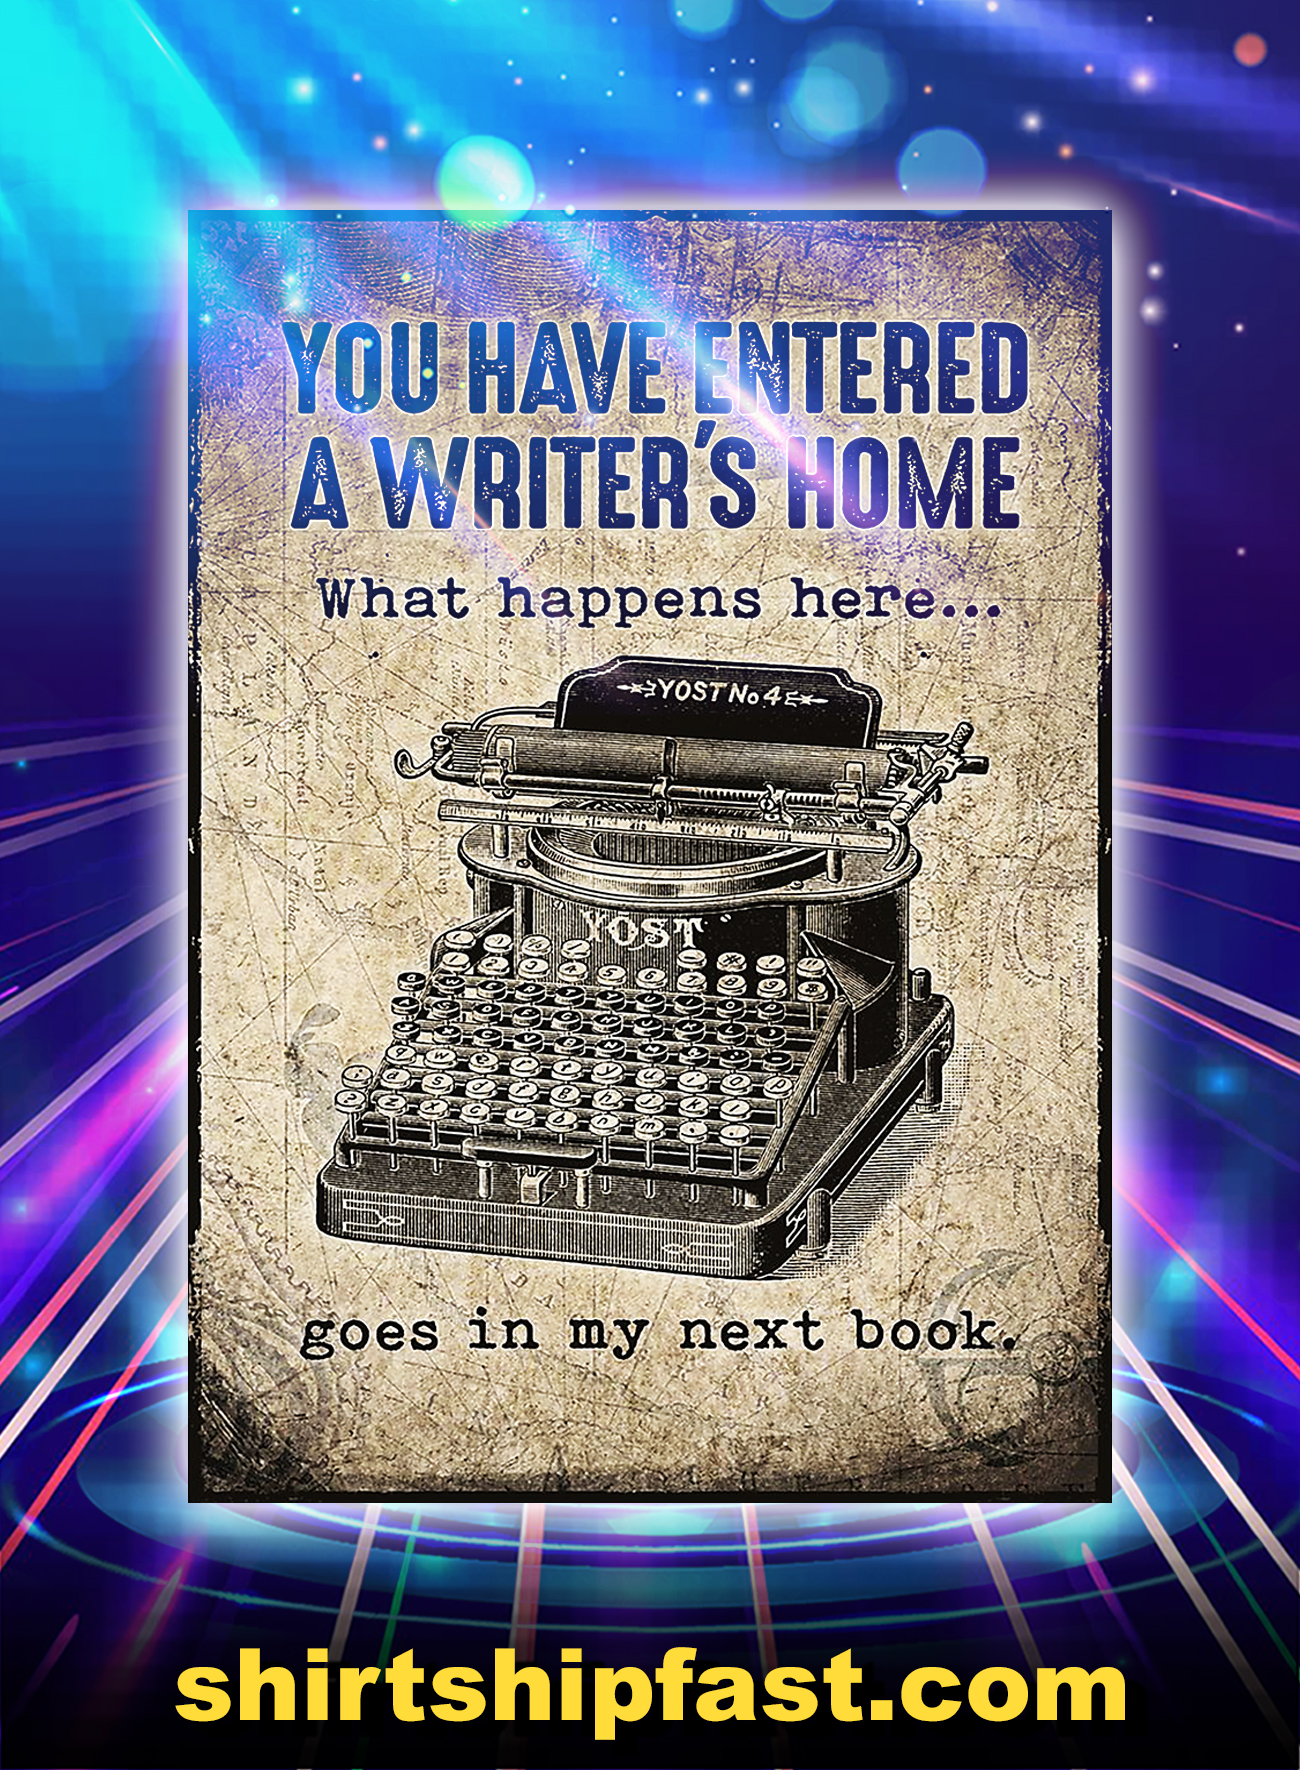 You have entered a writer's home what happens here goes in my next book poster - A4